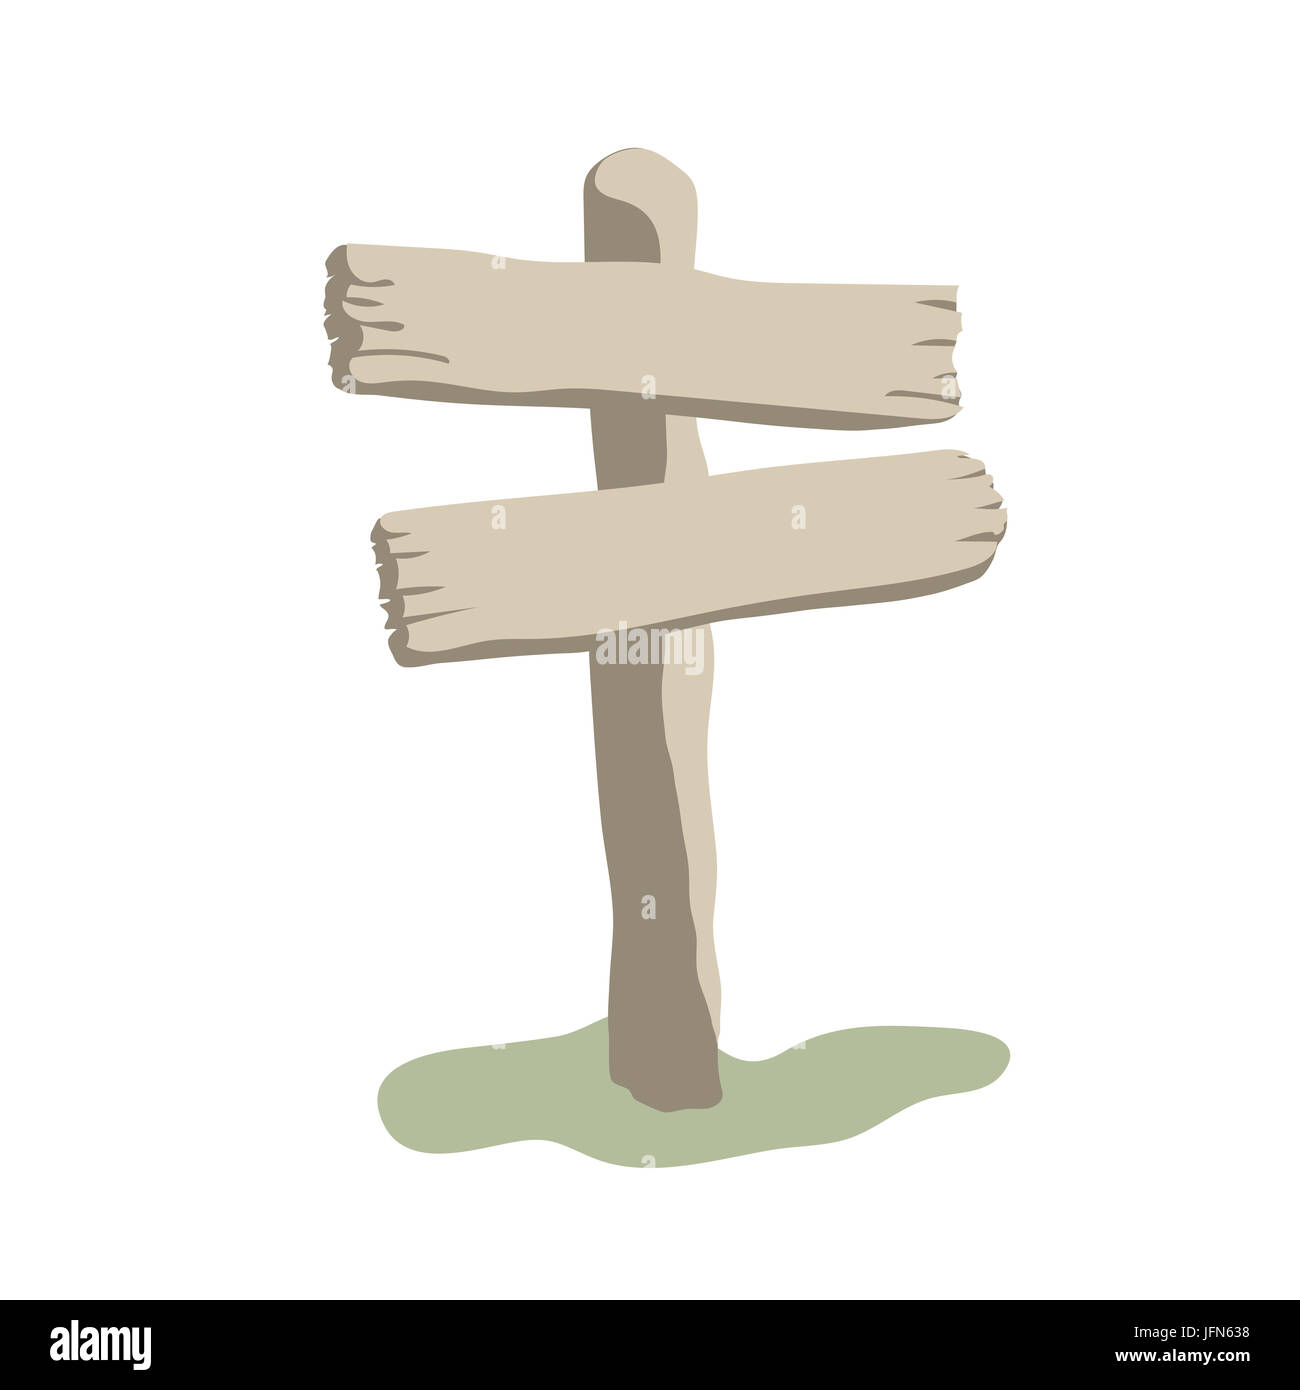 Two arrow shapes blank weathered wooden sign boards cartoon style - Stock Image